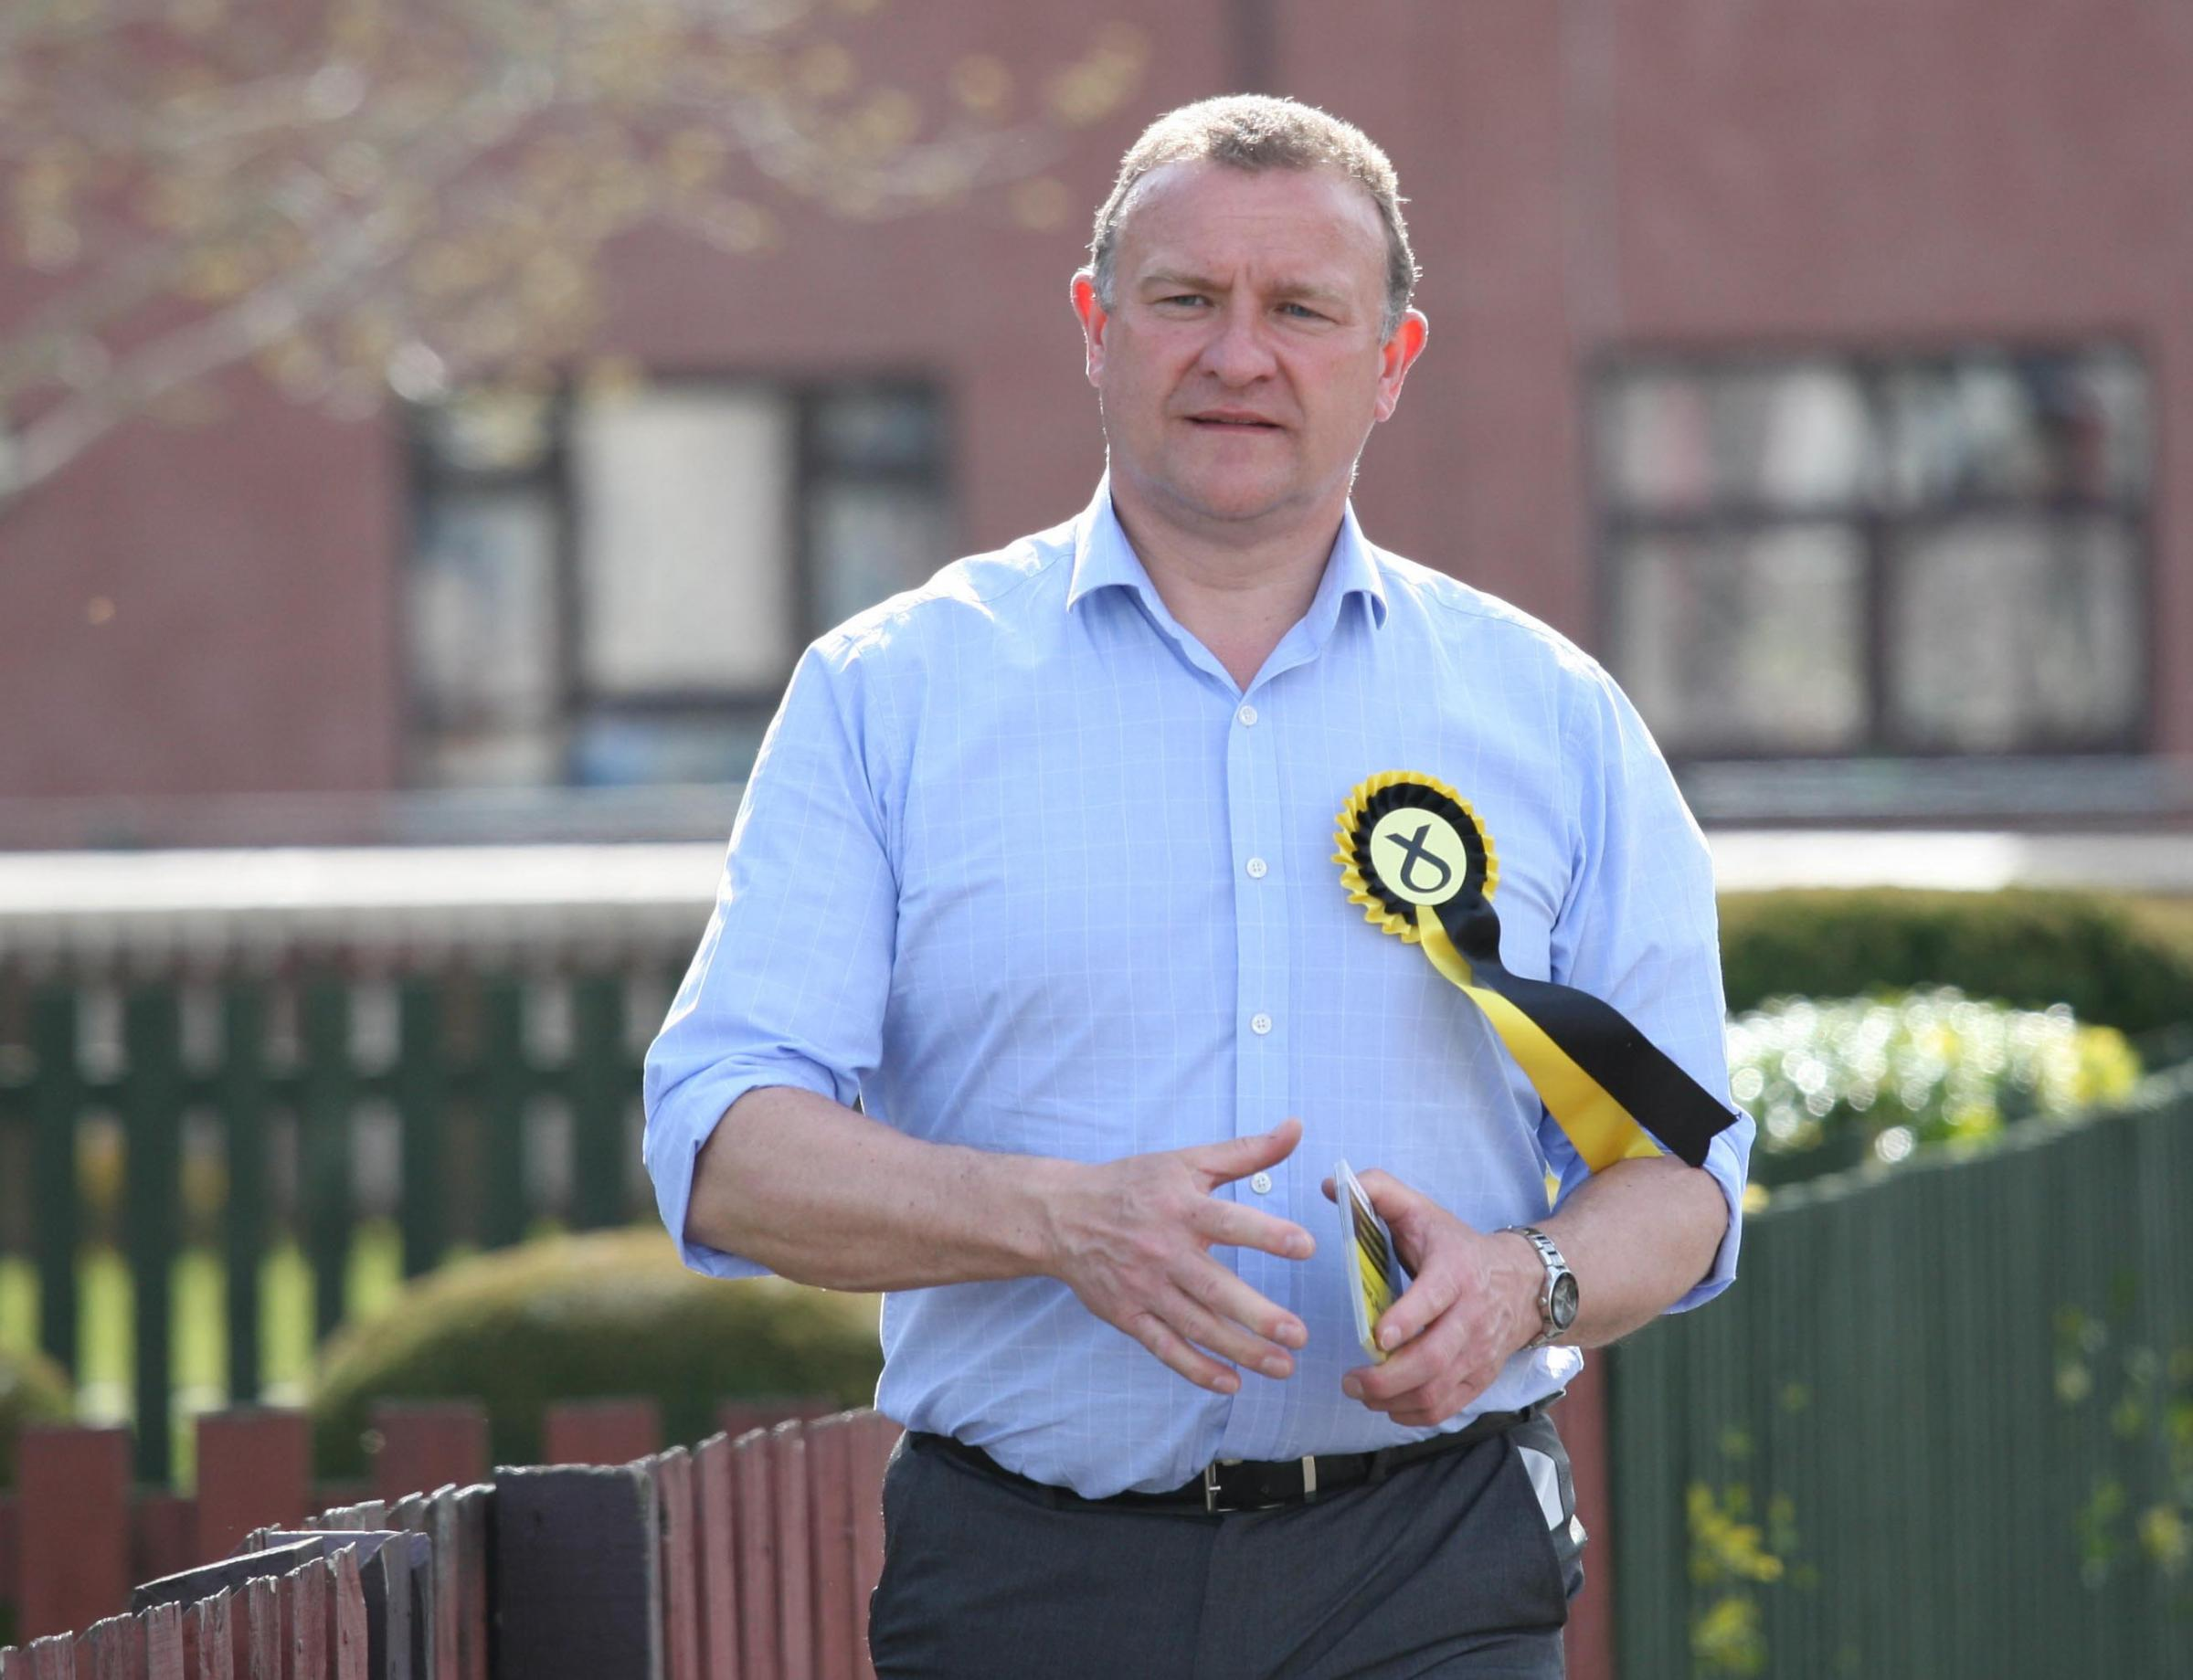 The SNP's Drew Hendry urged the Tories to explain their decision making